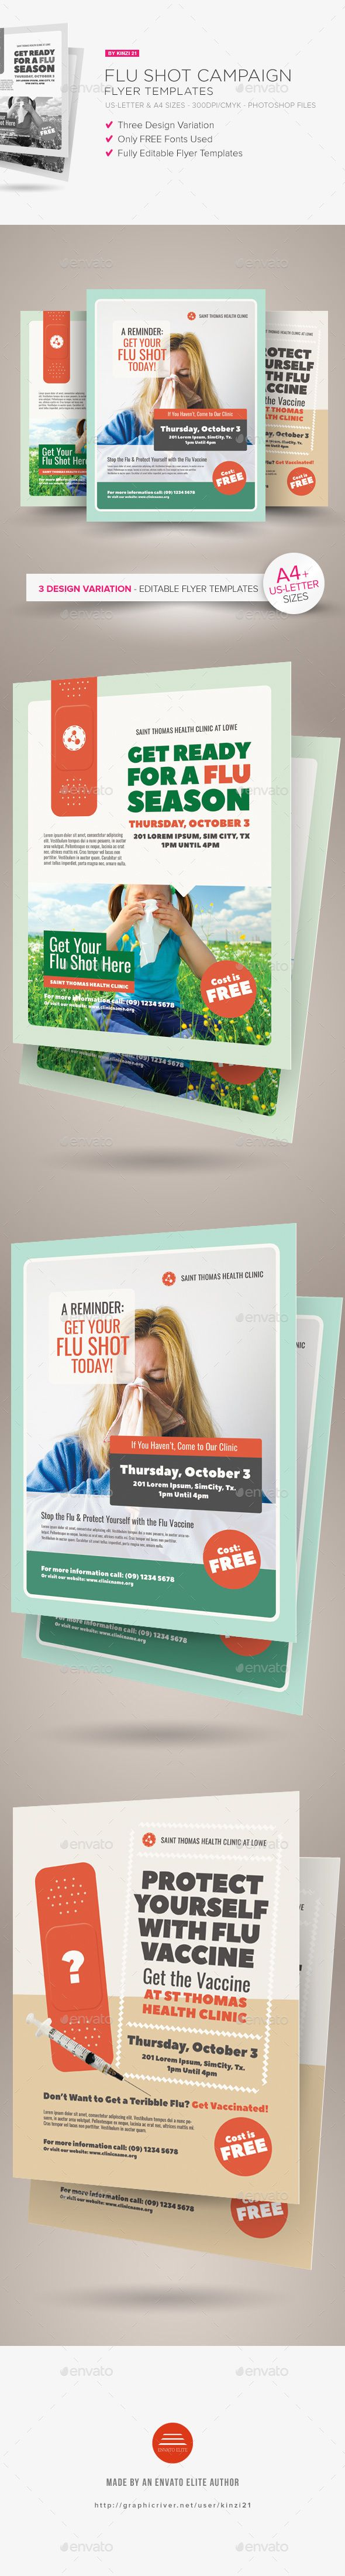 Flu Shot Campaign Flyer Templates | Flu Campaign | Pinterest ...